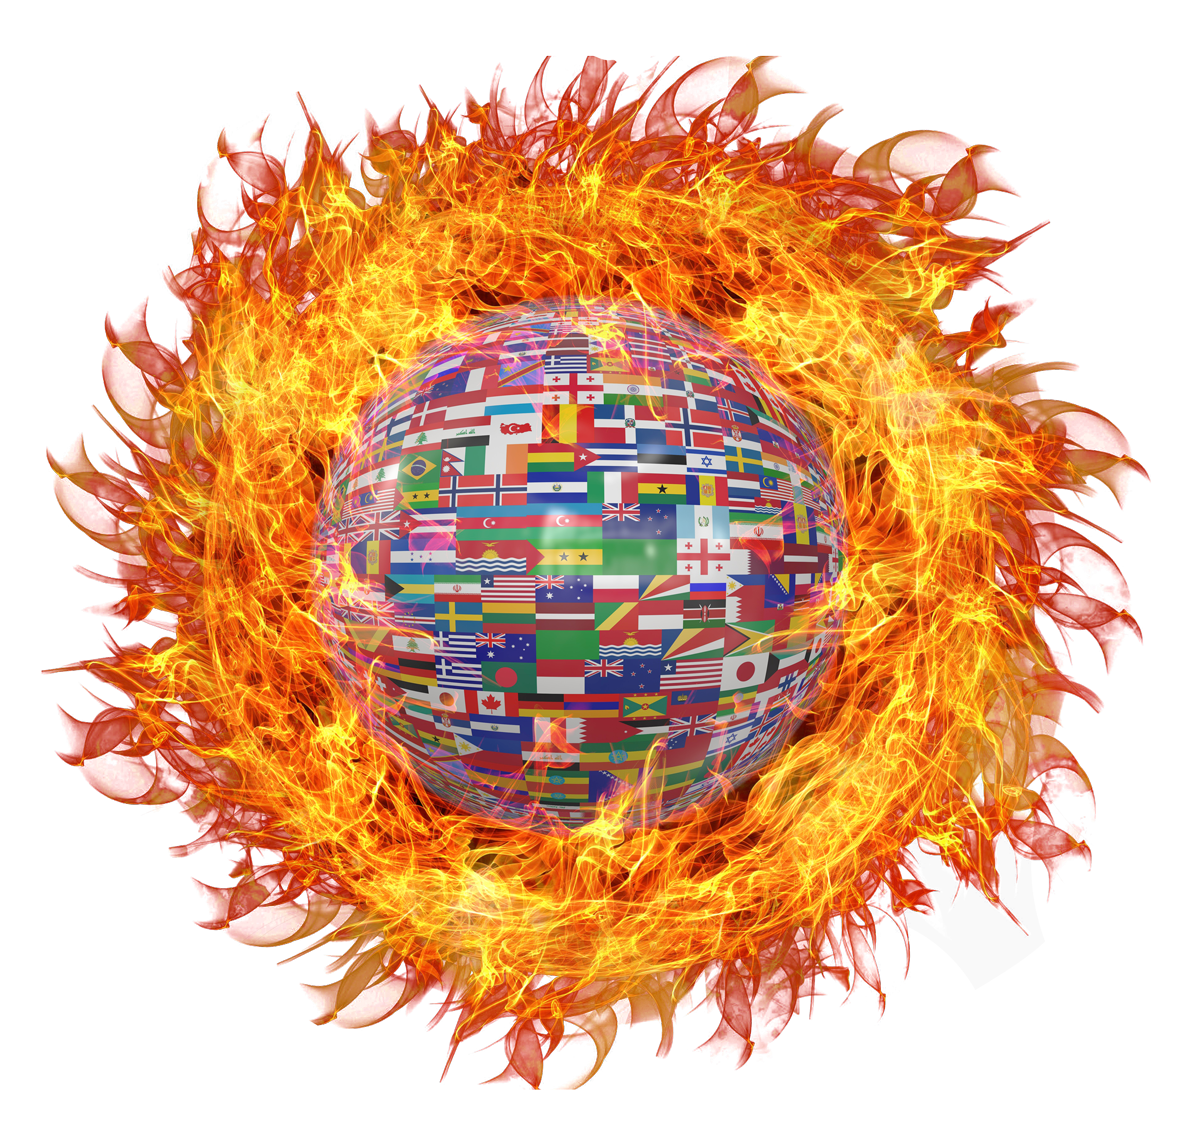 Globe with World Flags on Fire PNG Image